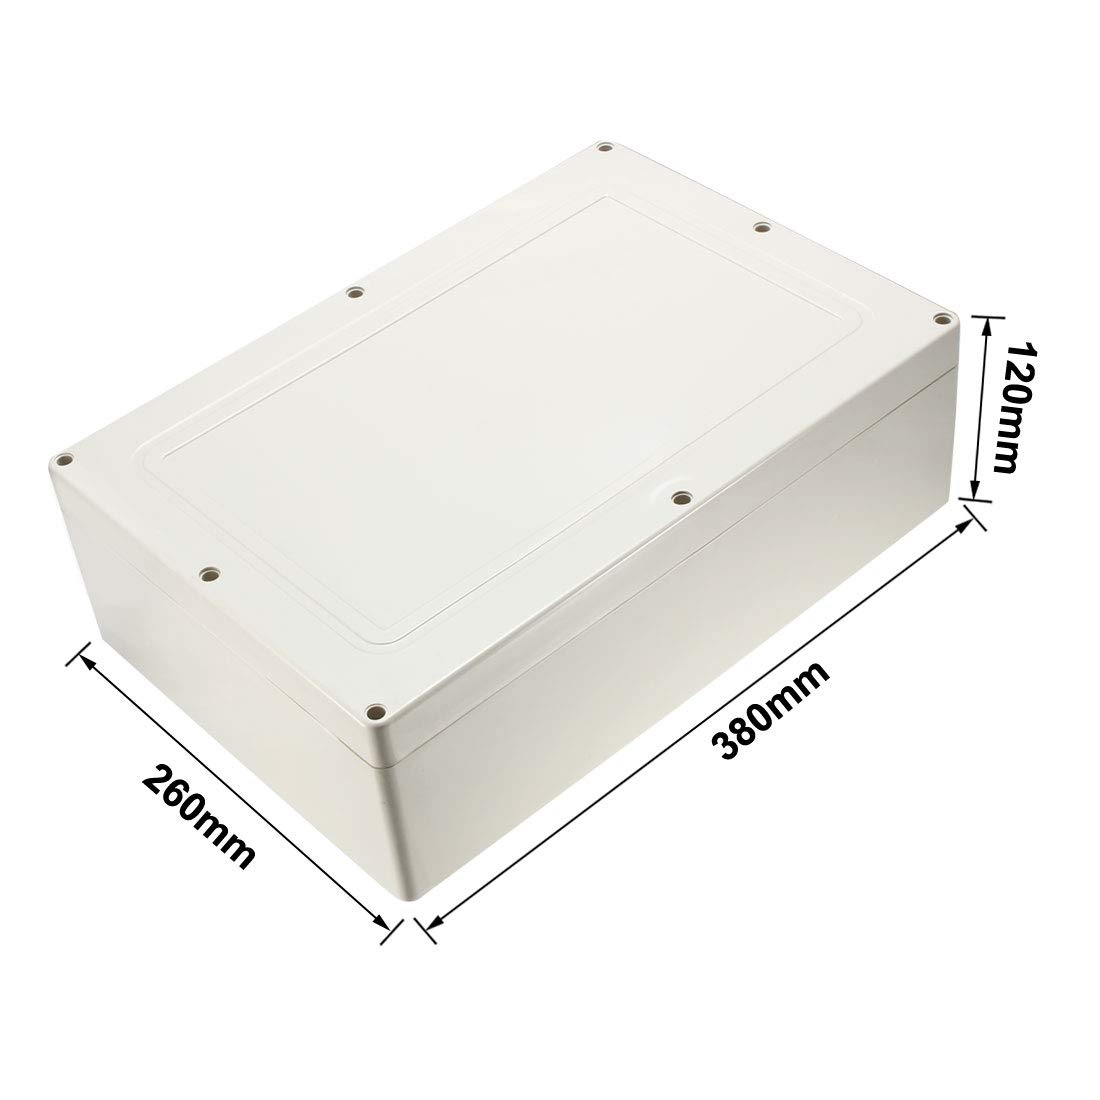 uxcell 2pcs 100x68x50mm Electronic Waterproof IP65 Sealed ABS Plastic DIY Junction Box Enclosure Case Gray a18051700ux0377